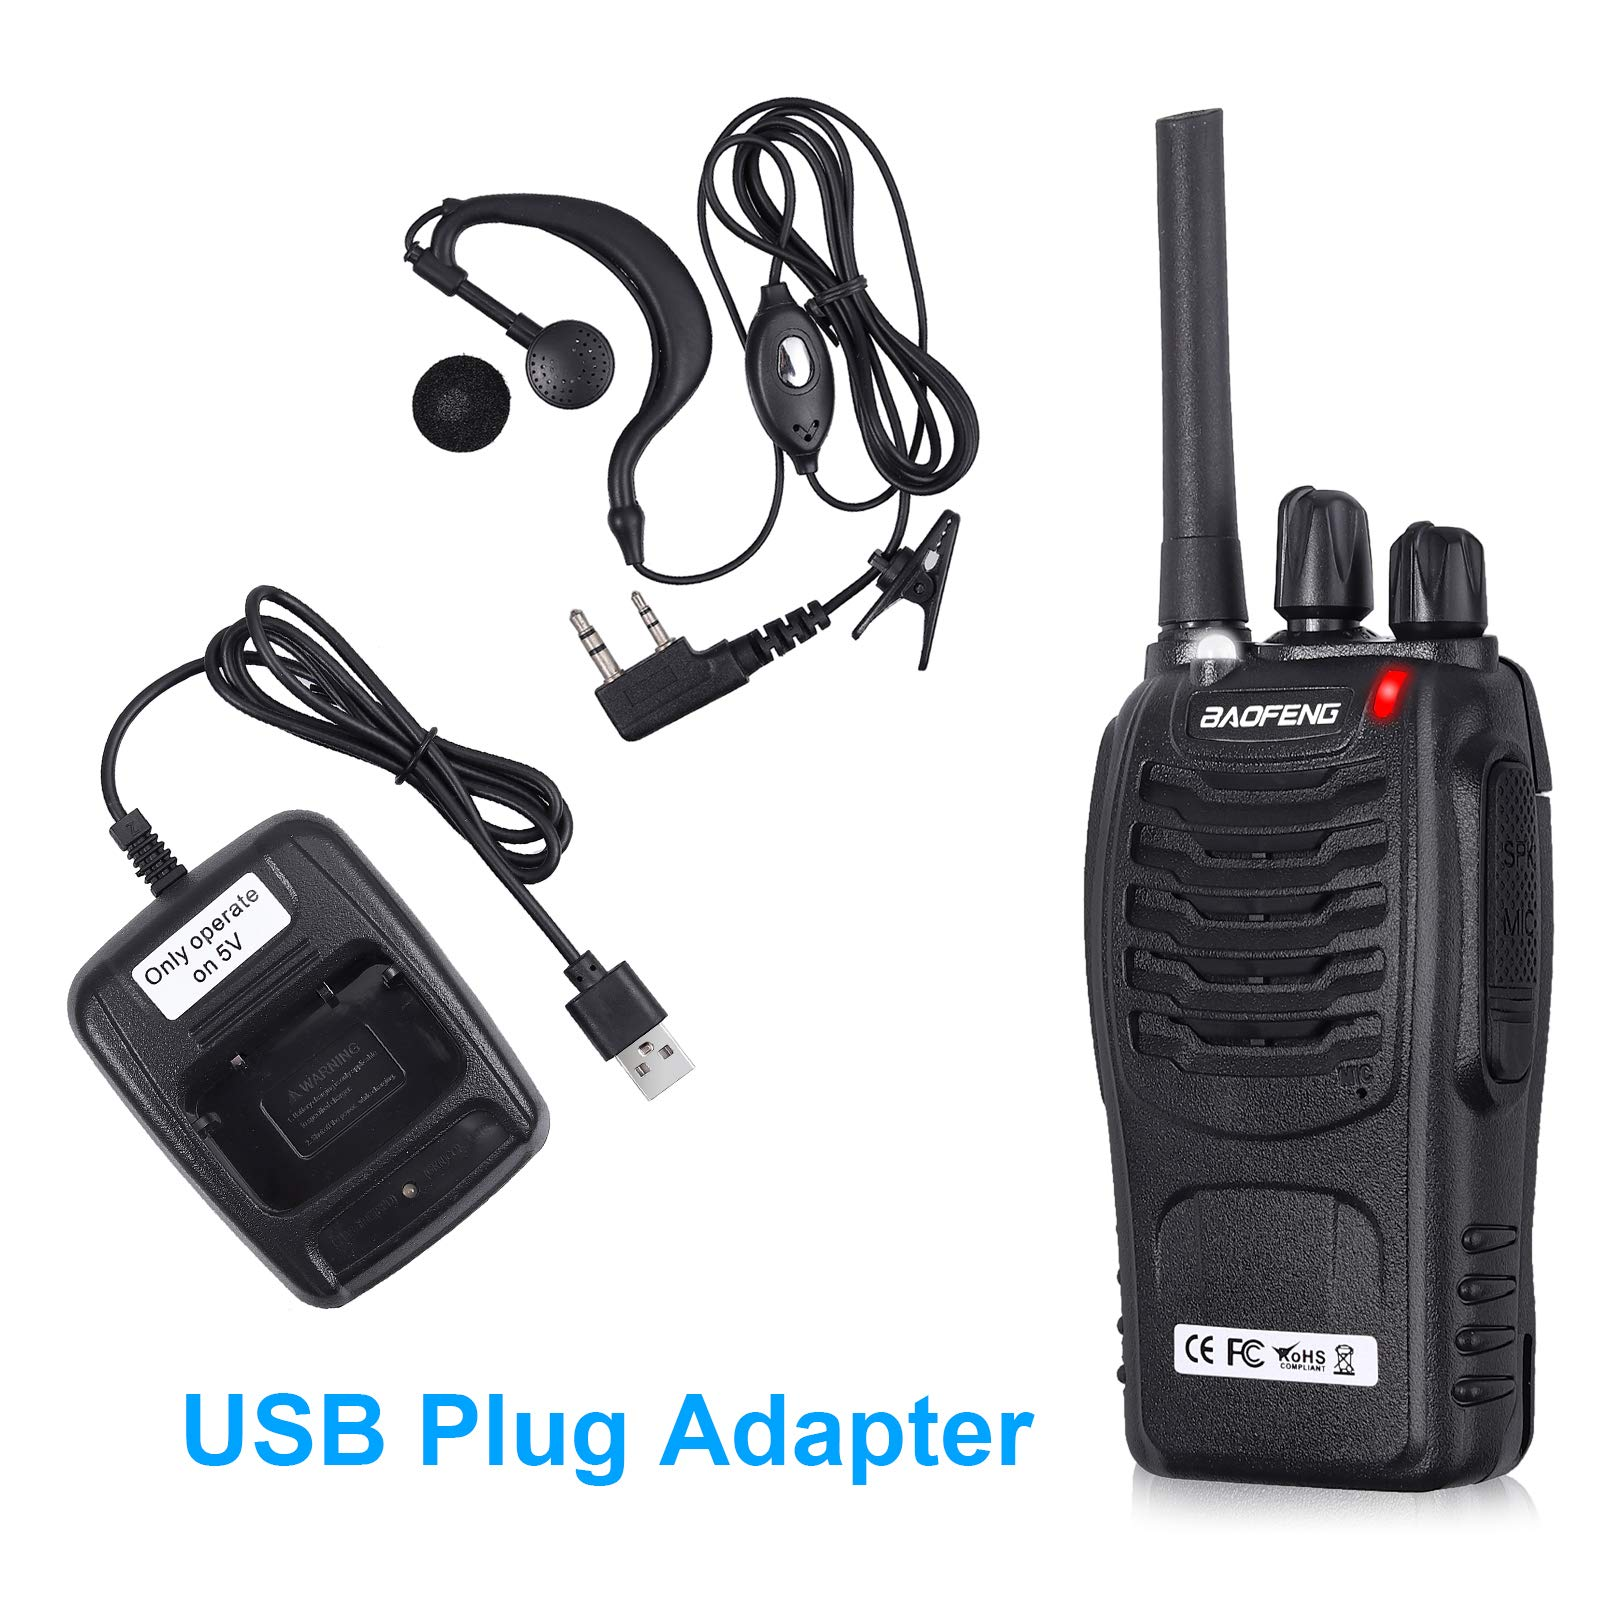 Neoteck 2 PCS Walkie Talkies Long Range 16 Channel 2 Way Radio FRS462MHz Walky Talky Rechargeable with USB Charger Original Earpieces for Field Survival Biking Hiking by Neoteck (Image #4)